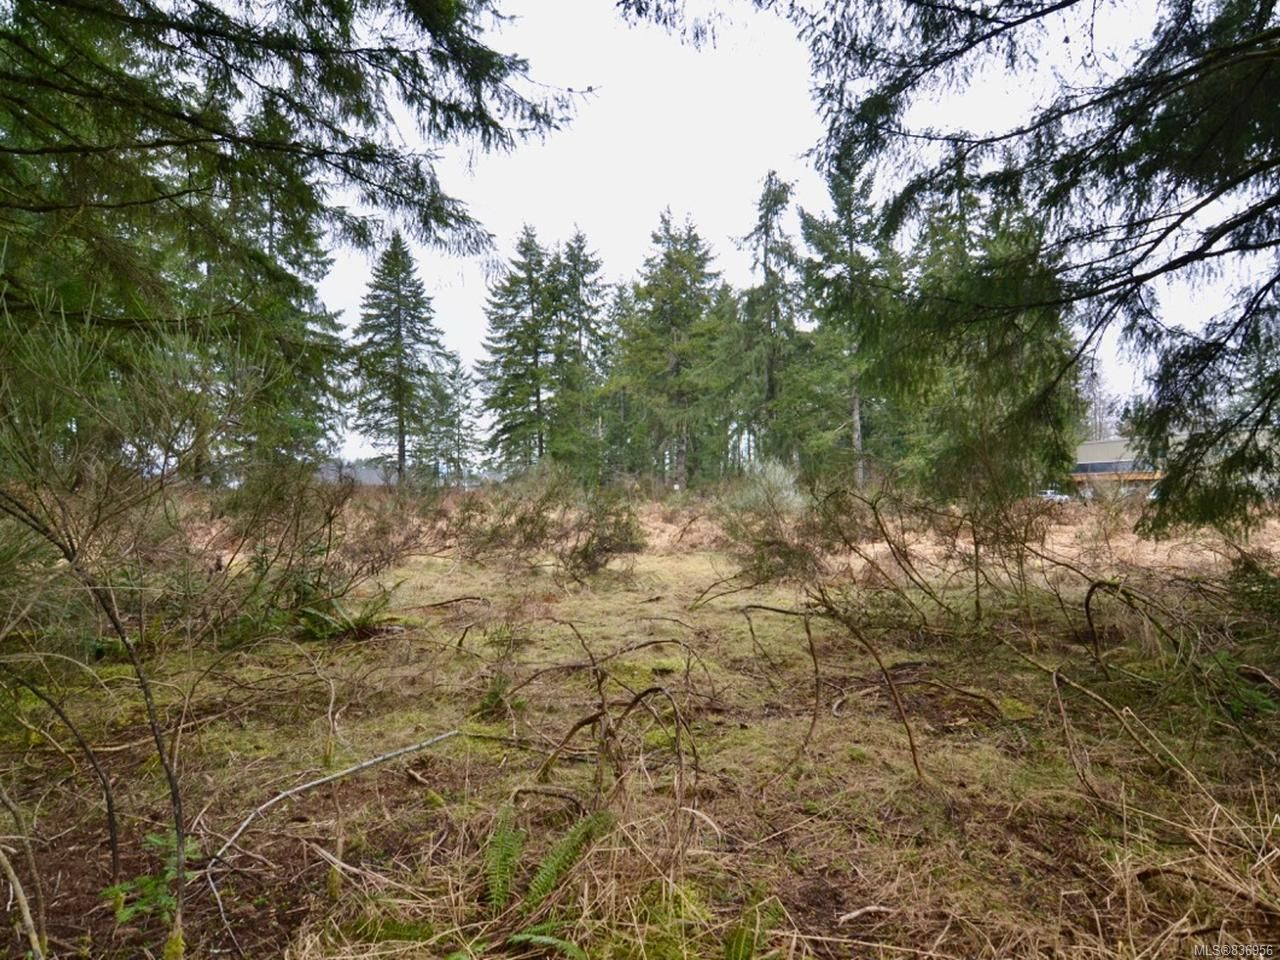 Photo 4: Photos: Lot A Ulverston Ave in CUMBERLAND: CV Cumberland Other for sale (Comox Valley)  : MLS®# 836956